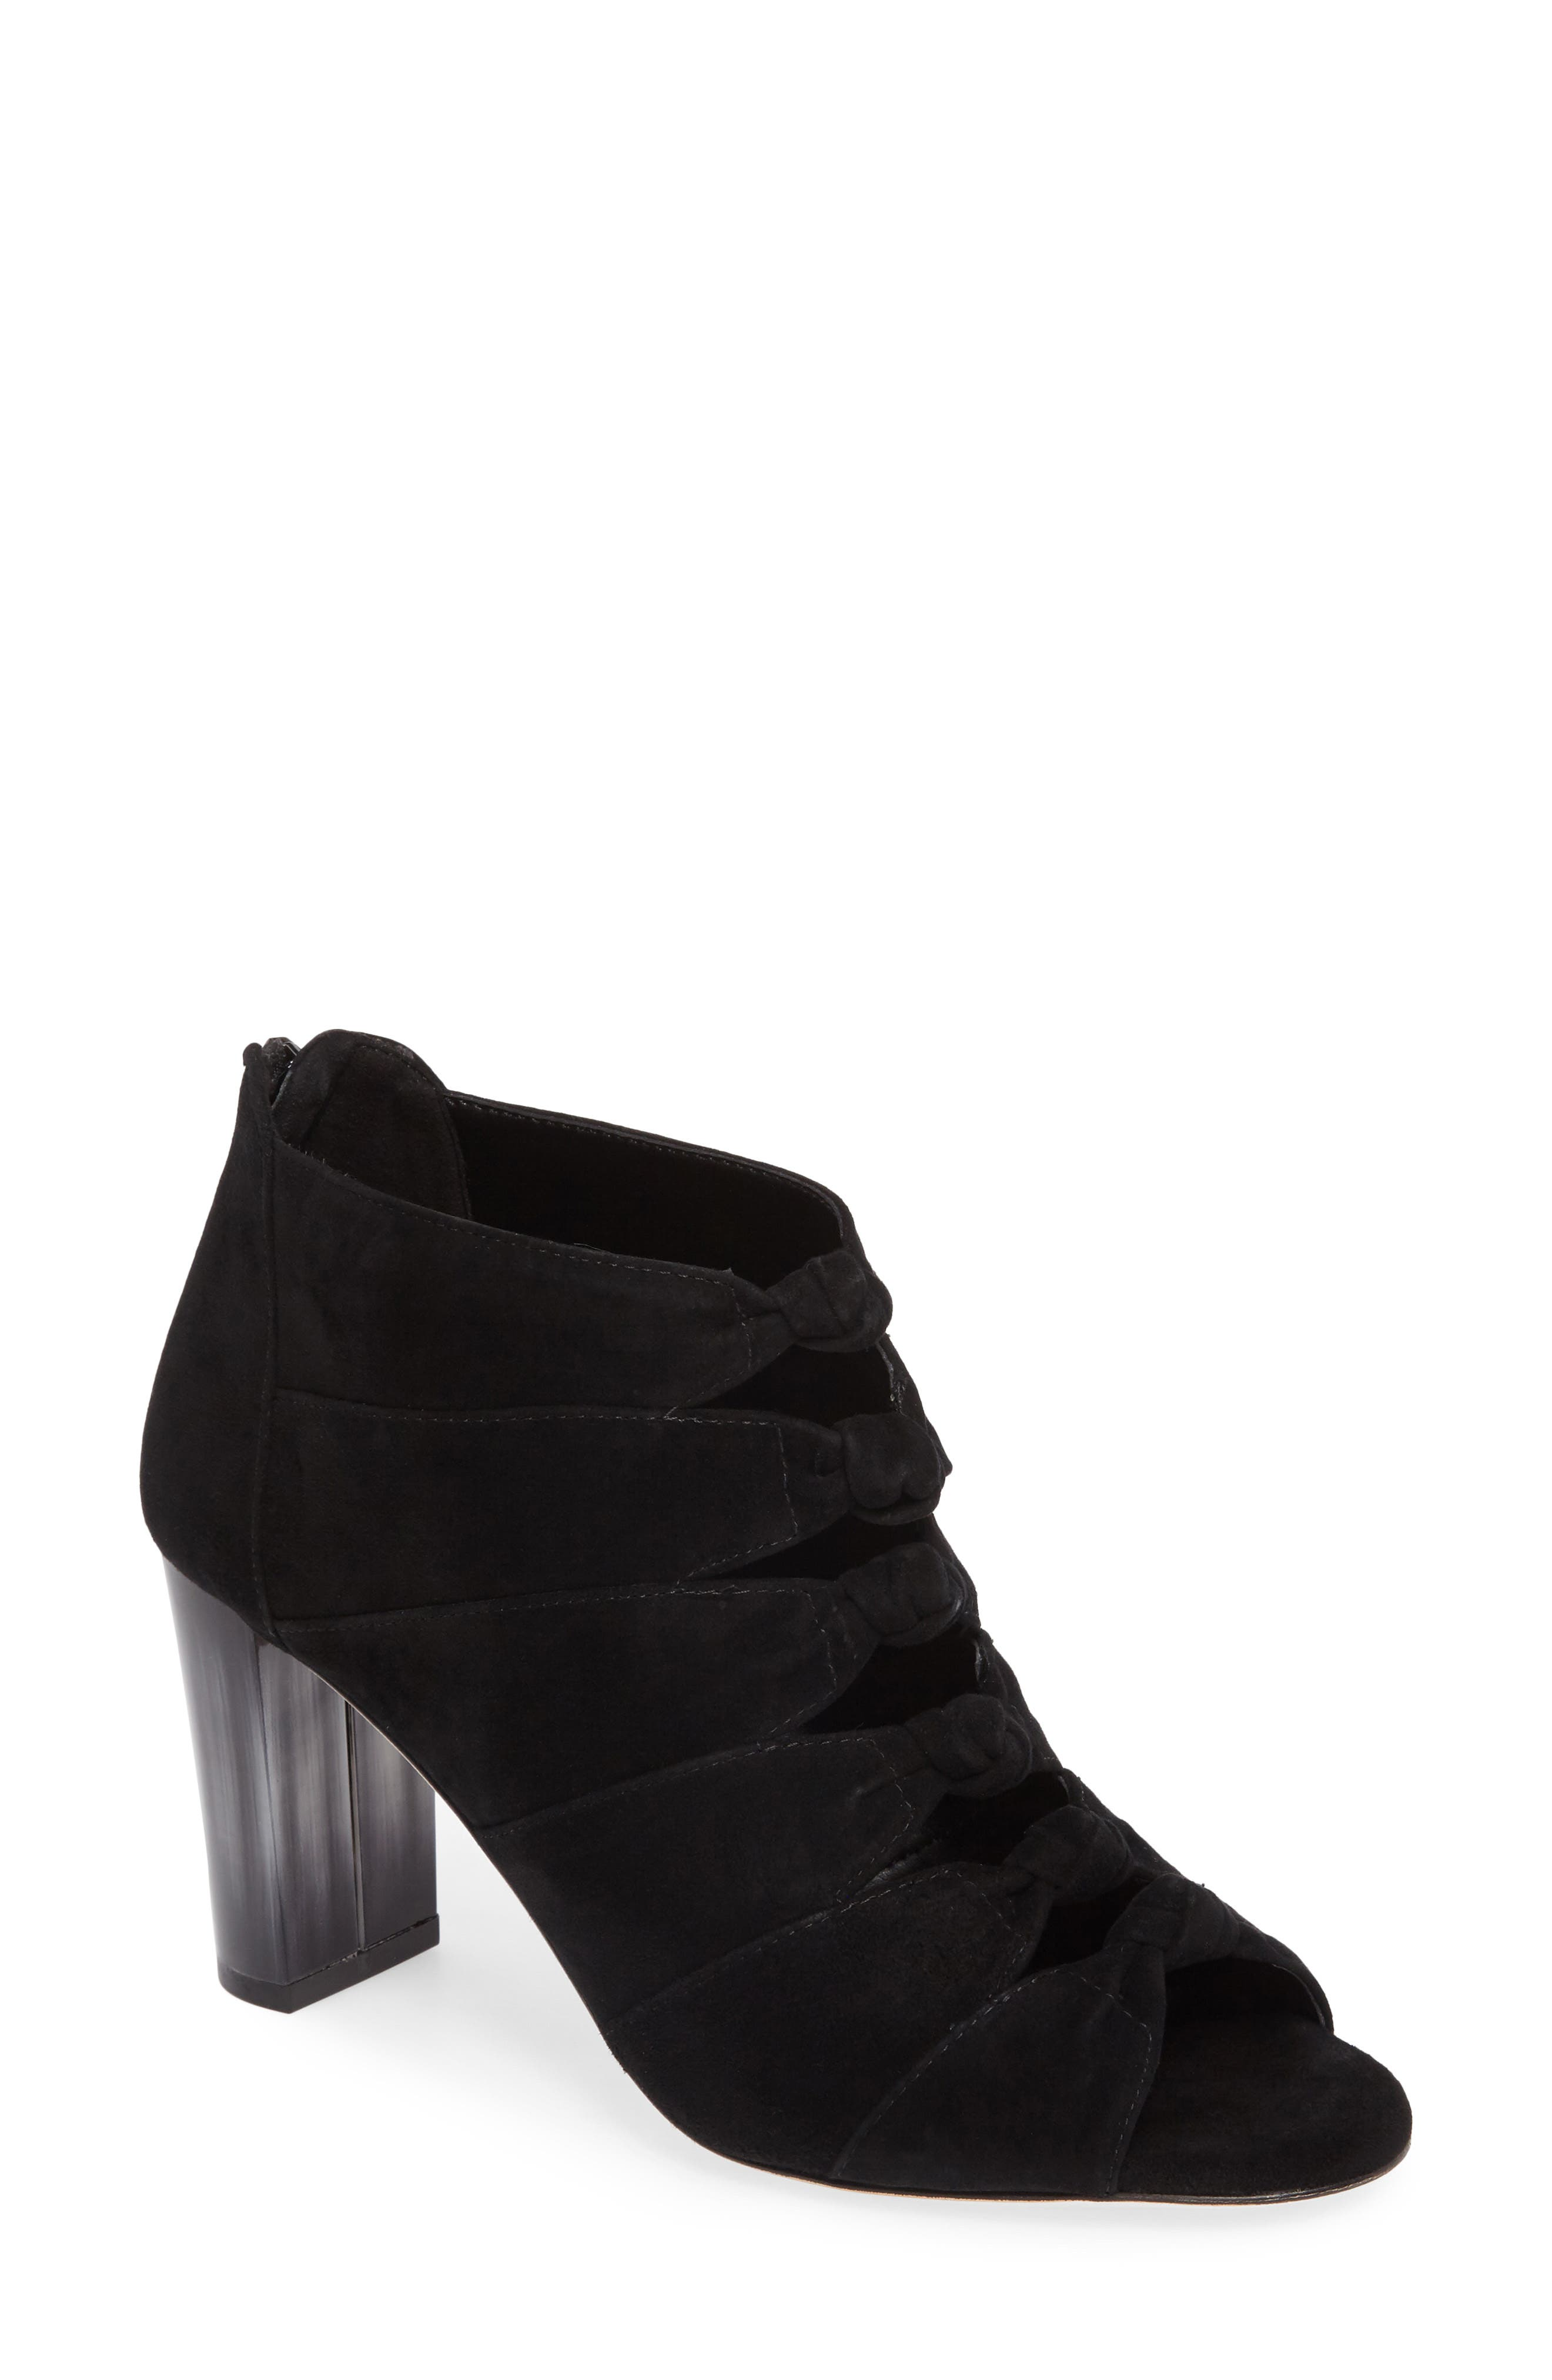 Betsy Open Toe Bootie,                             Main thumbnail 1, color,                             001